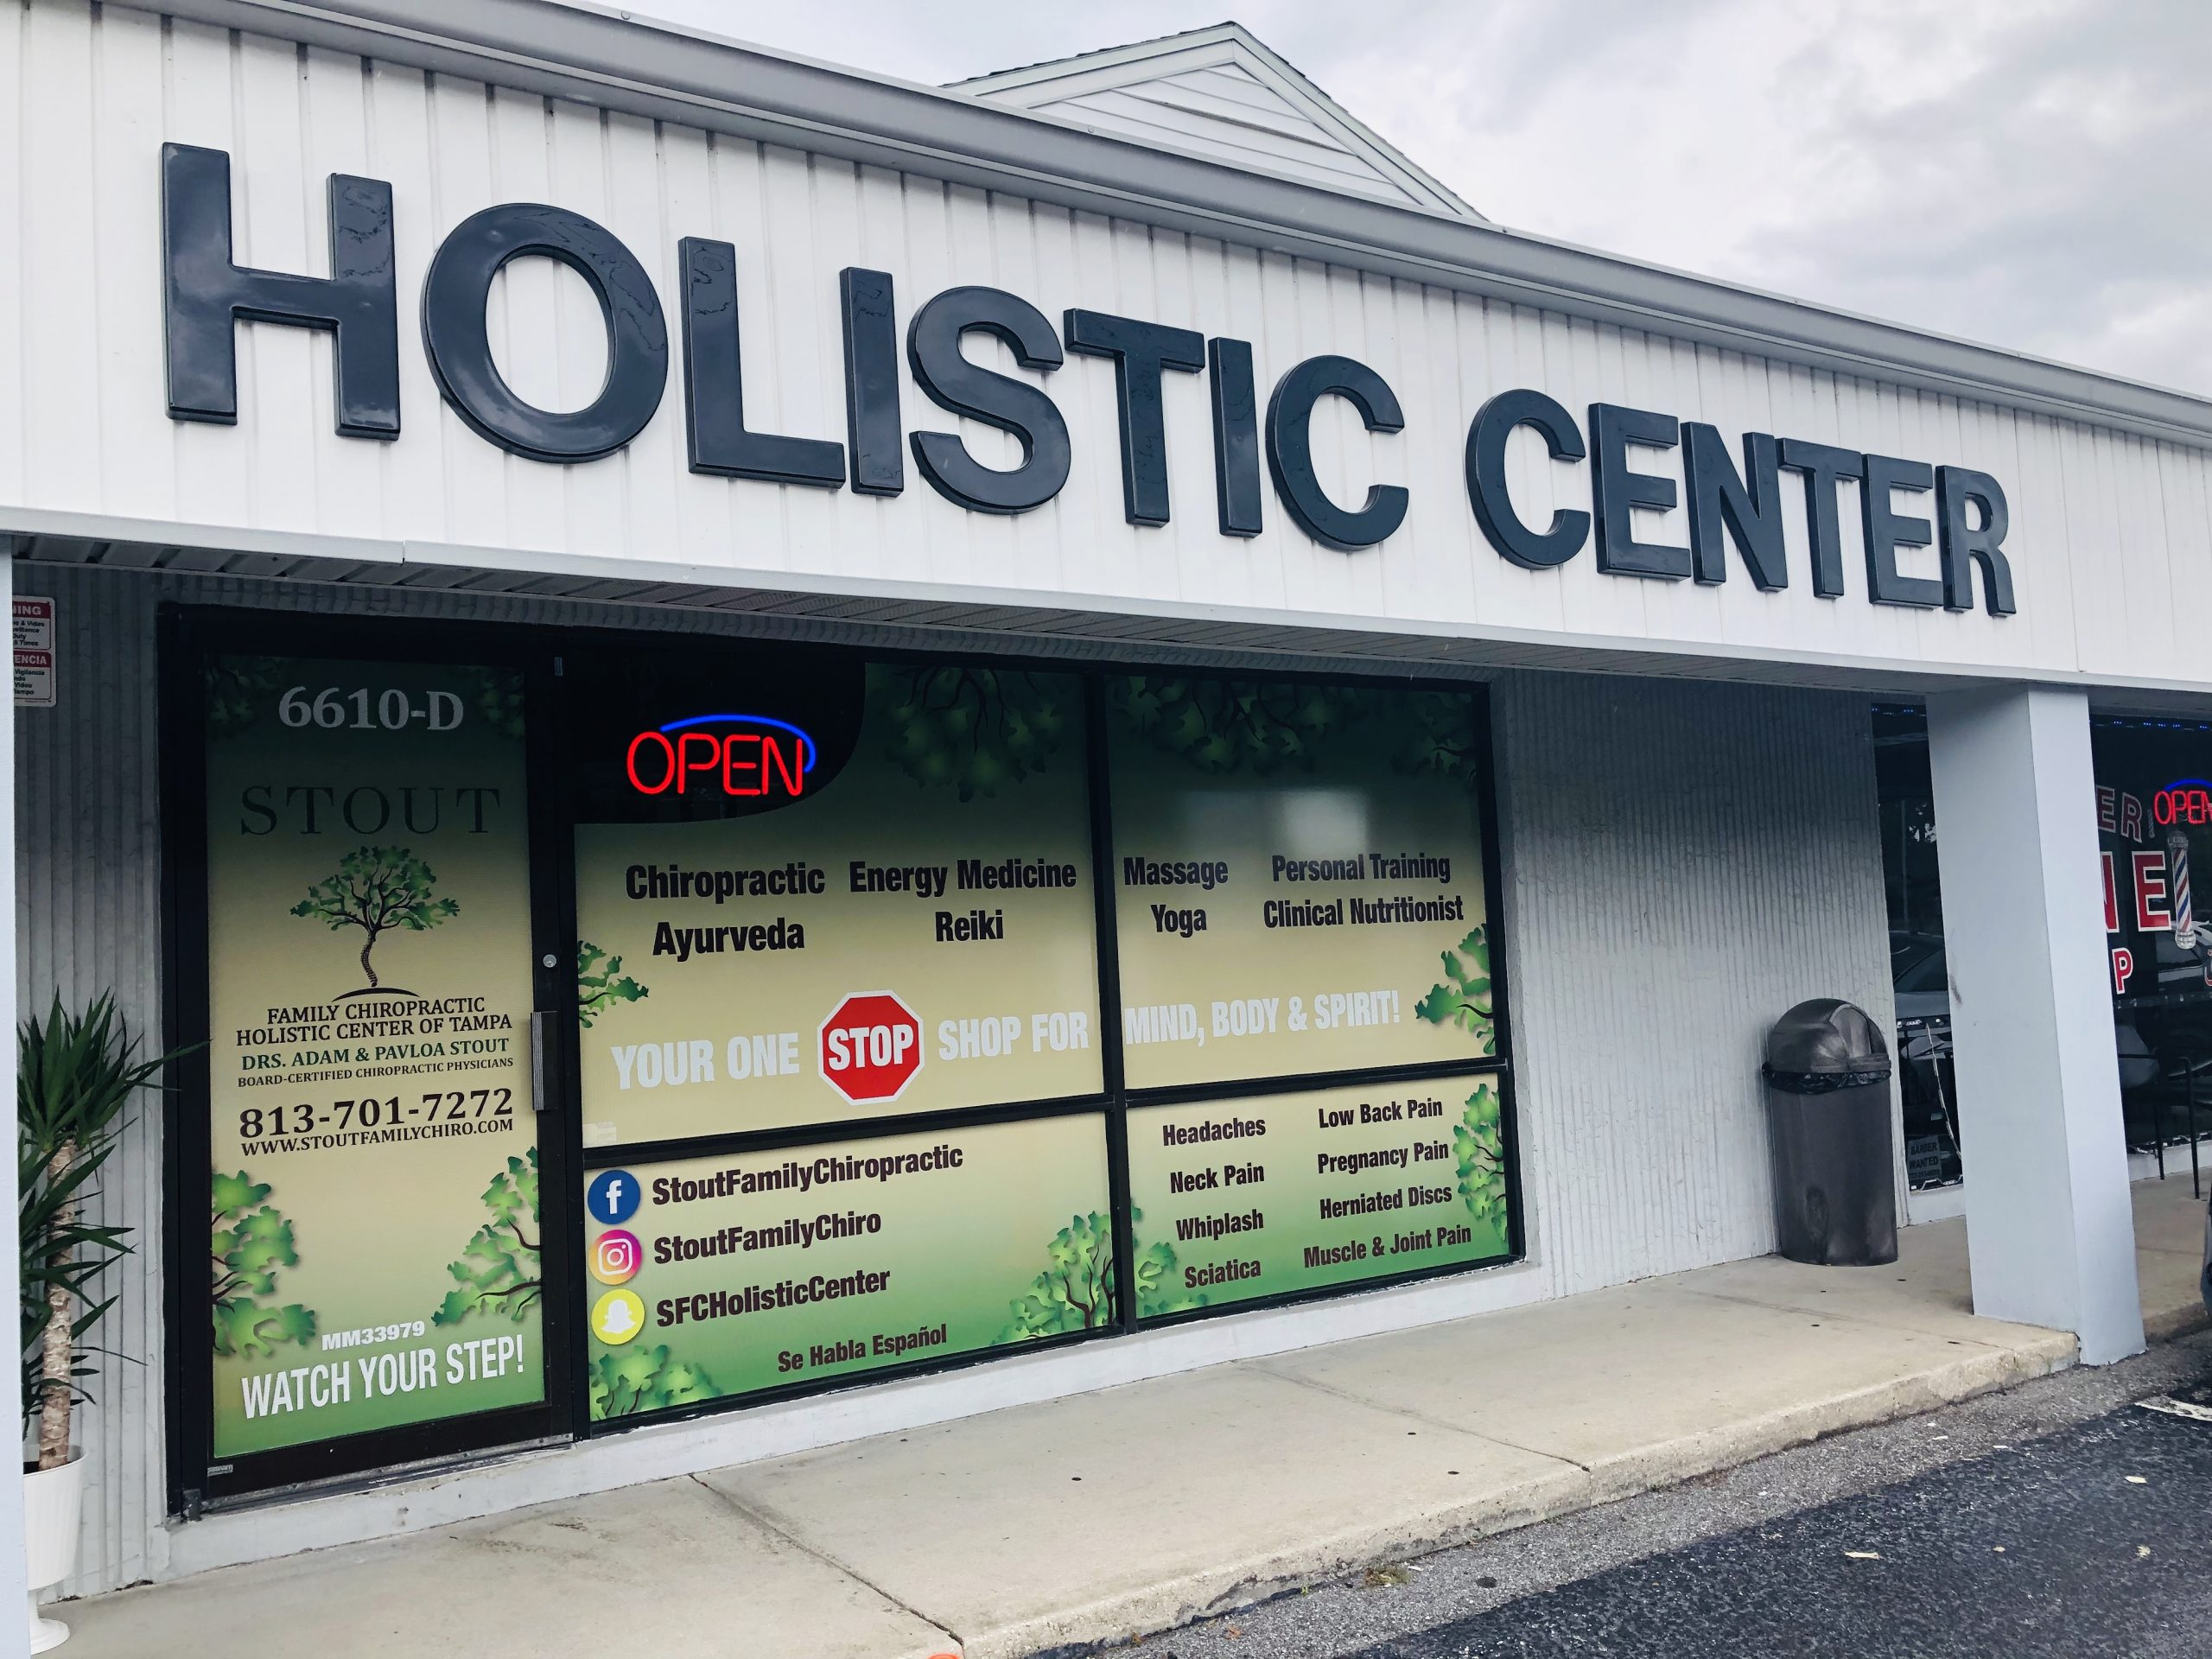 Holistic Center - Front of Office